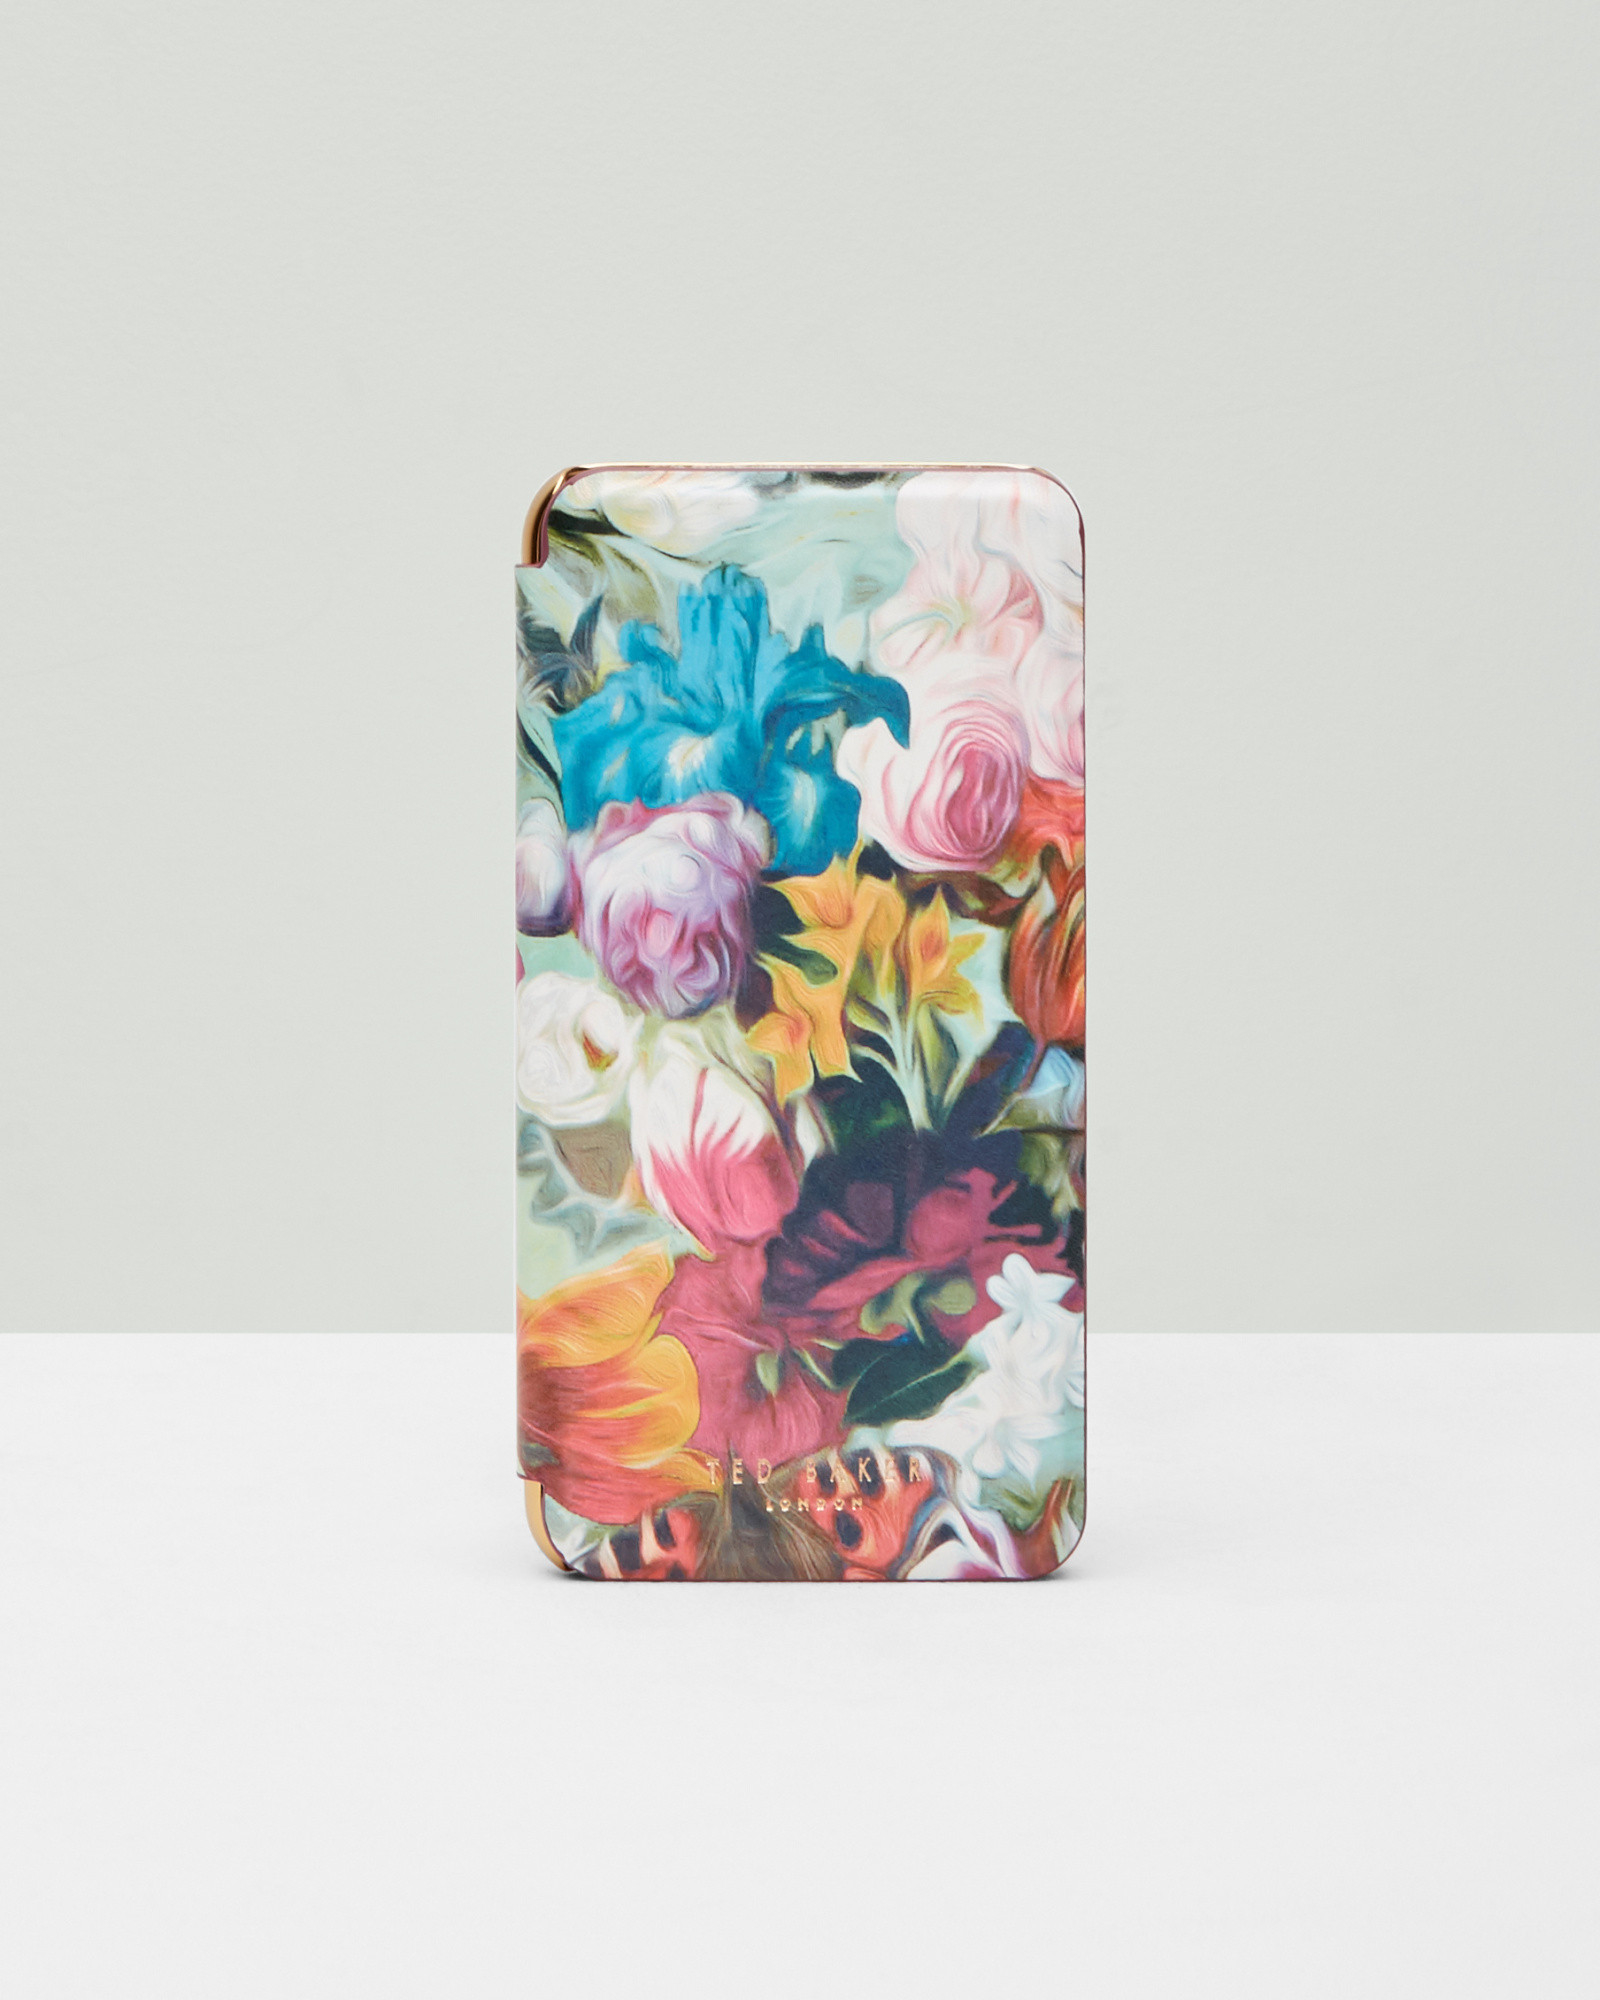 782938d263ea7 Lyst - Ted Baker Floral Swirl Iphone 6 Plus Case